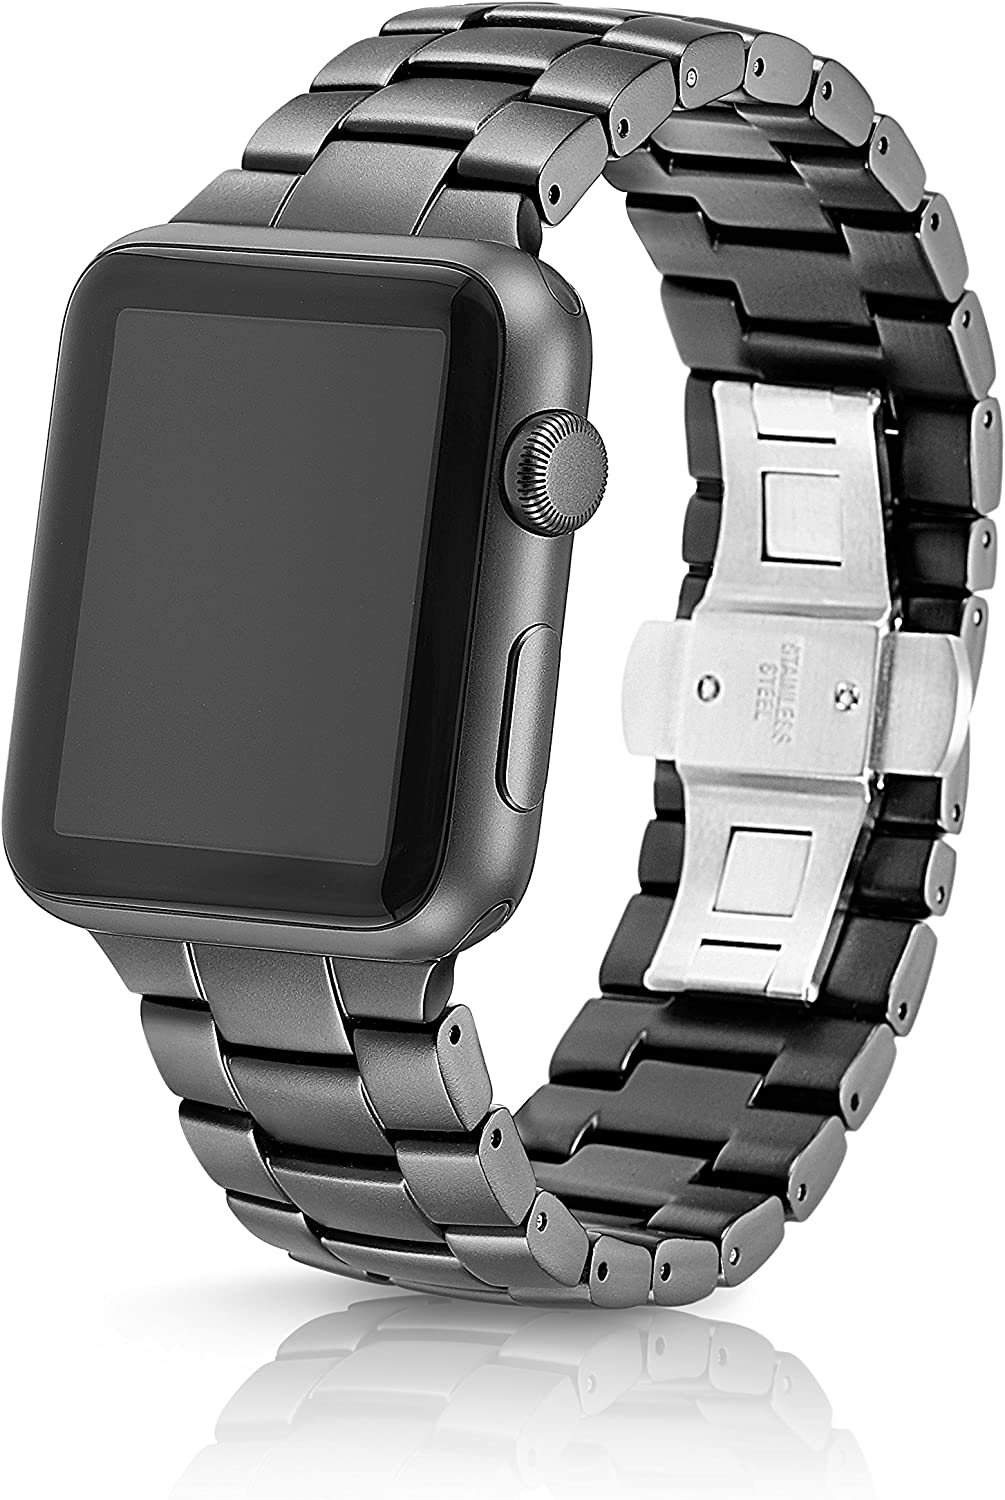 42/44mm JUUK Velo Premium Watch Band Made for The Apple Watch, Using Aircraft Grade, Hard Anodized 6000 Series Aluminum with a Solid Stainless Steel Butterfly deployant Buckle (Cosmic Grey) 81jkk1O1MvL